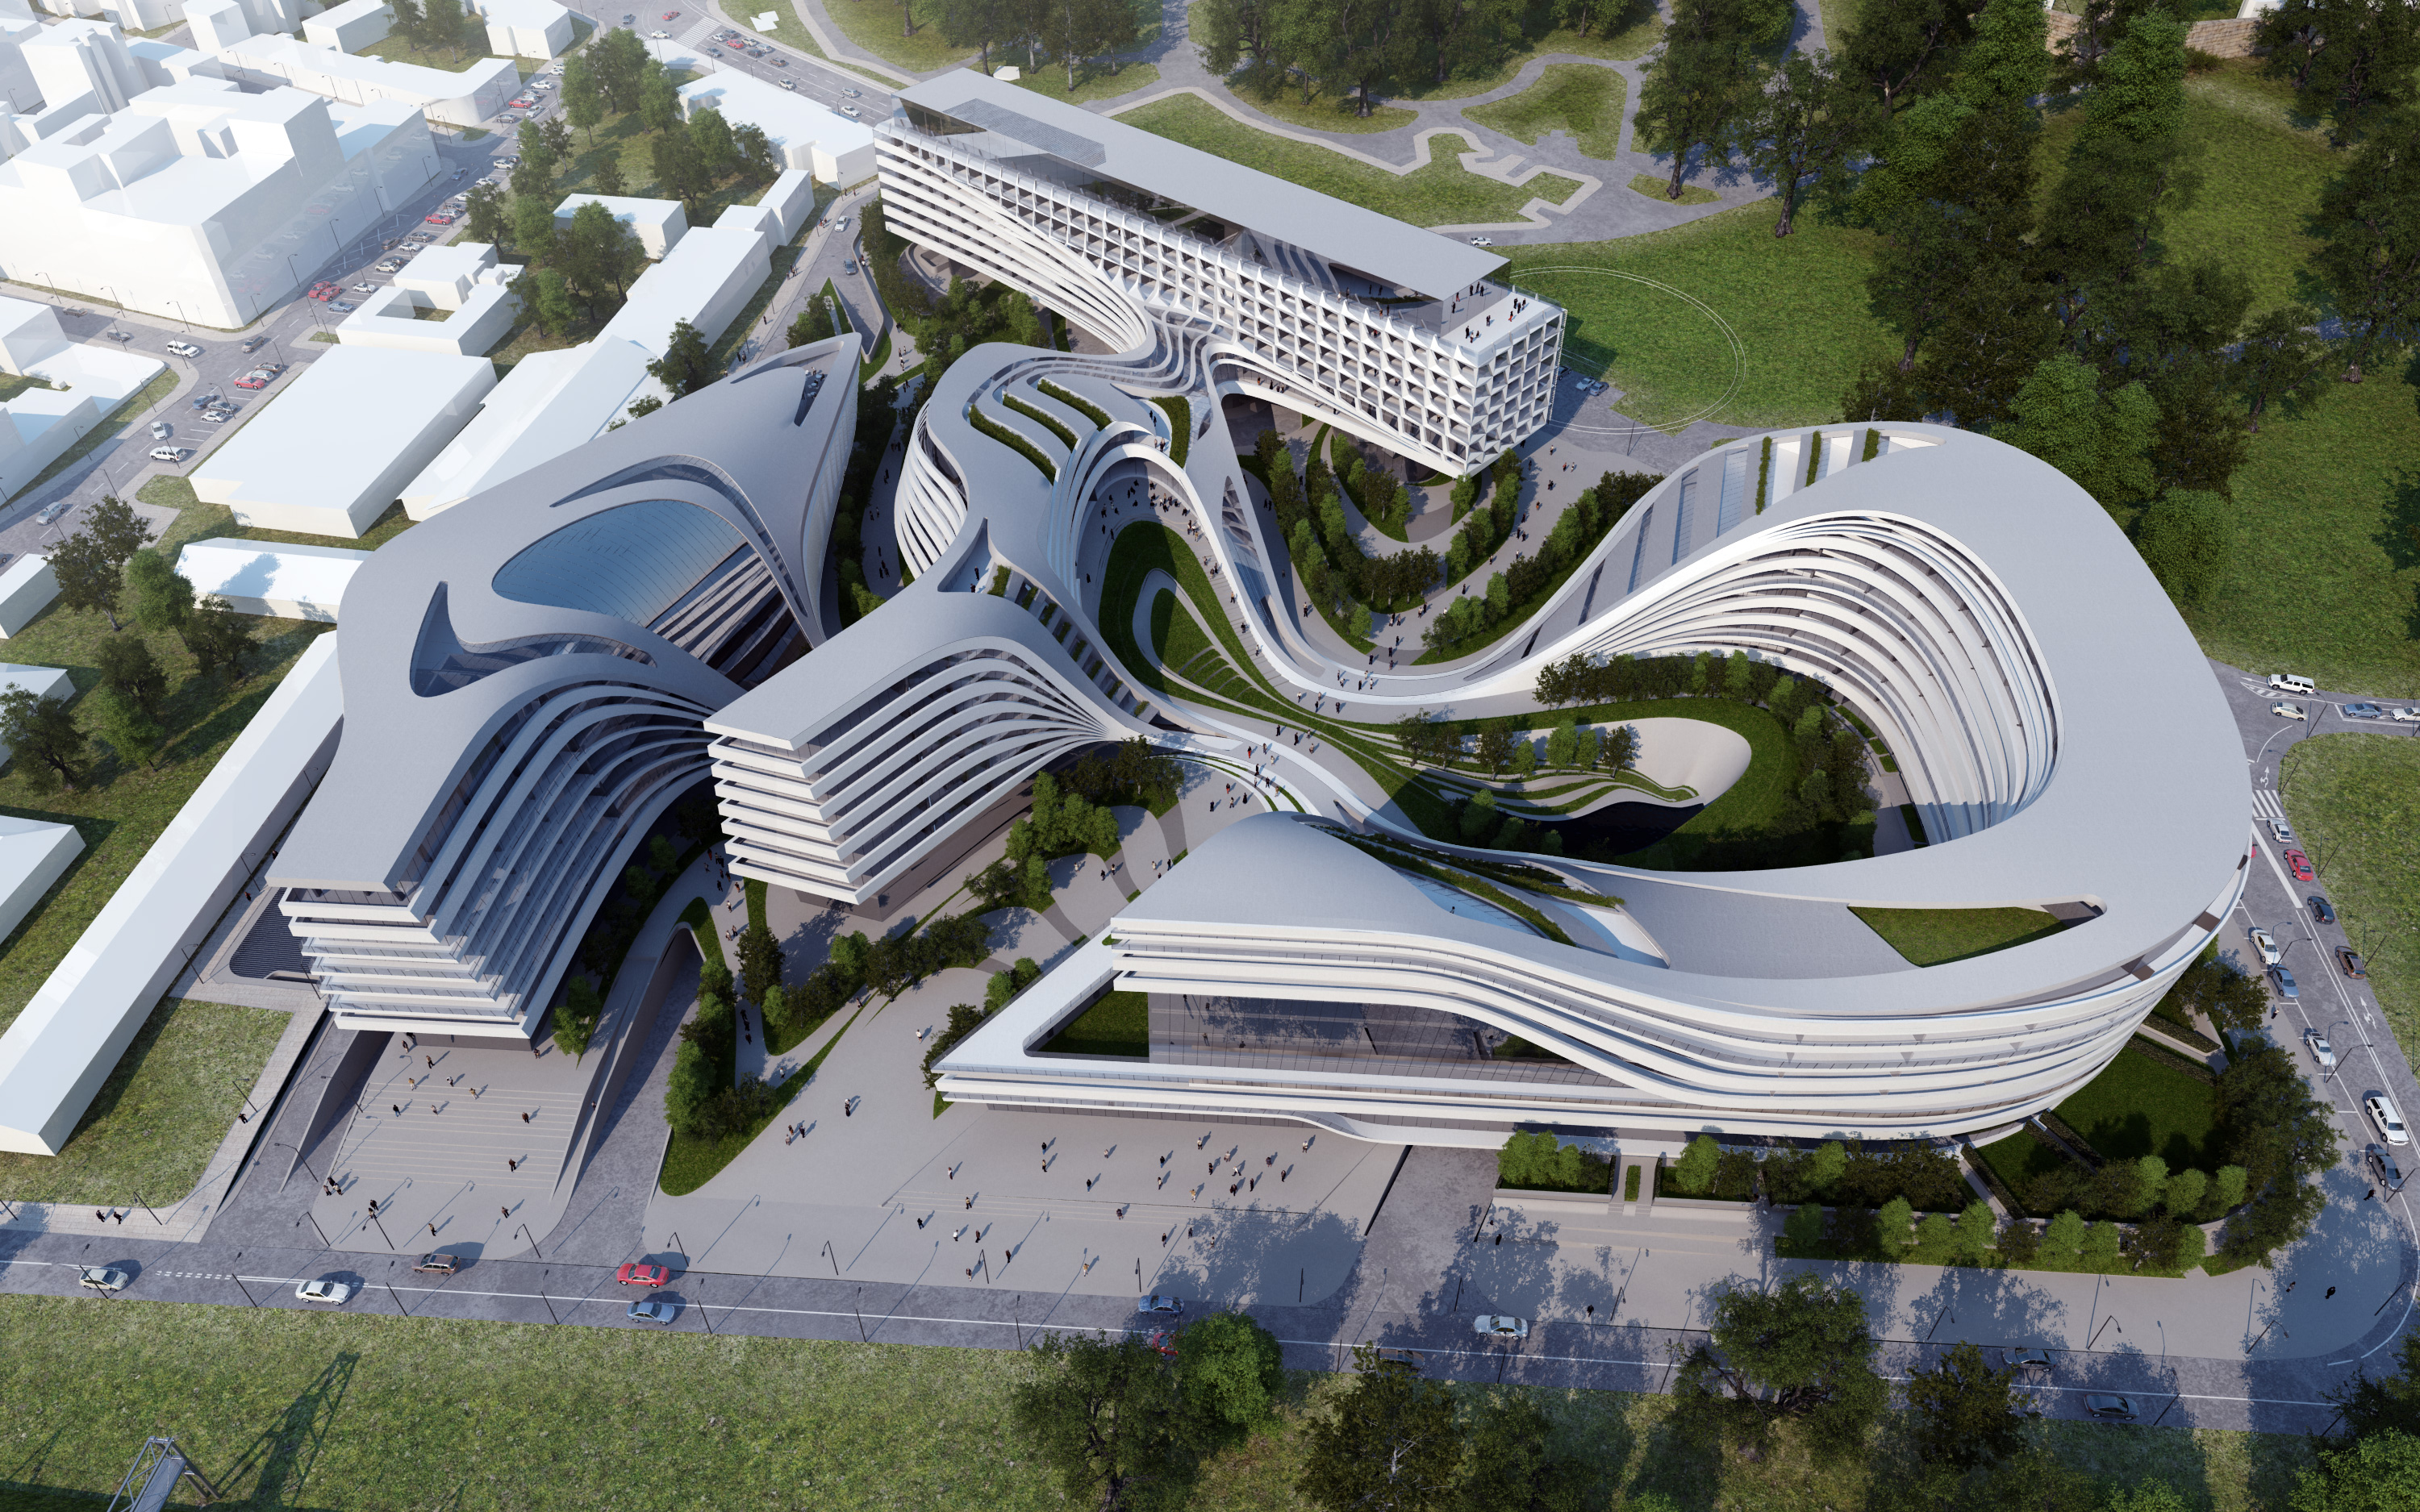 Beko masterplan belgrade zaha hadid architects the for Various architectural concepts